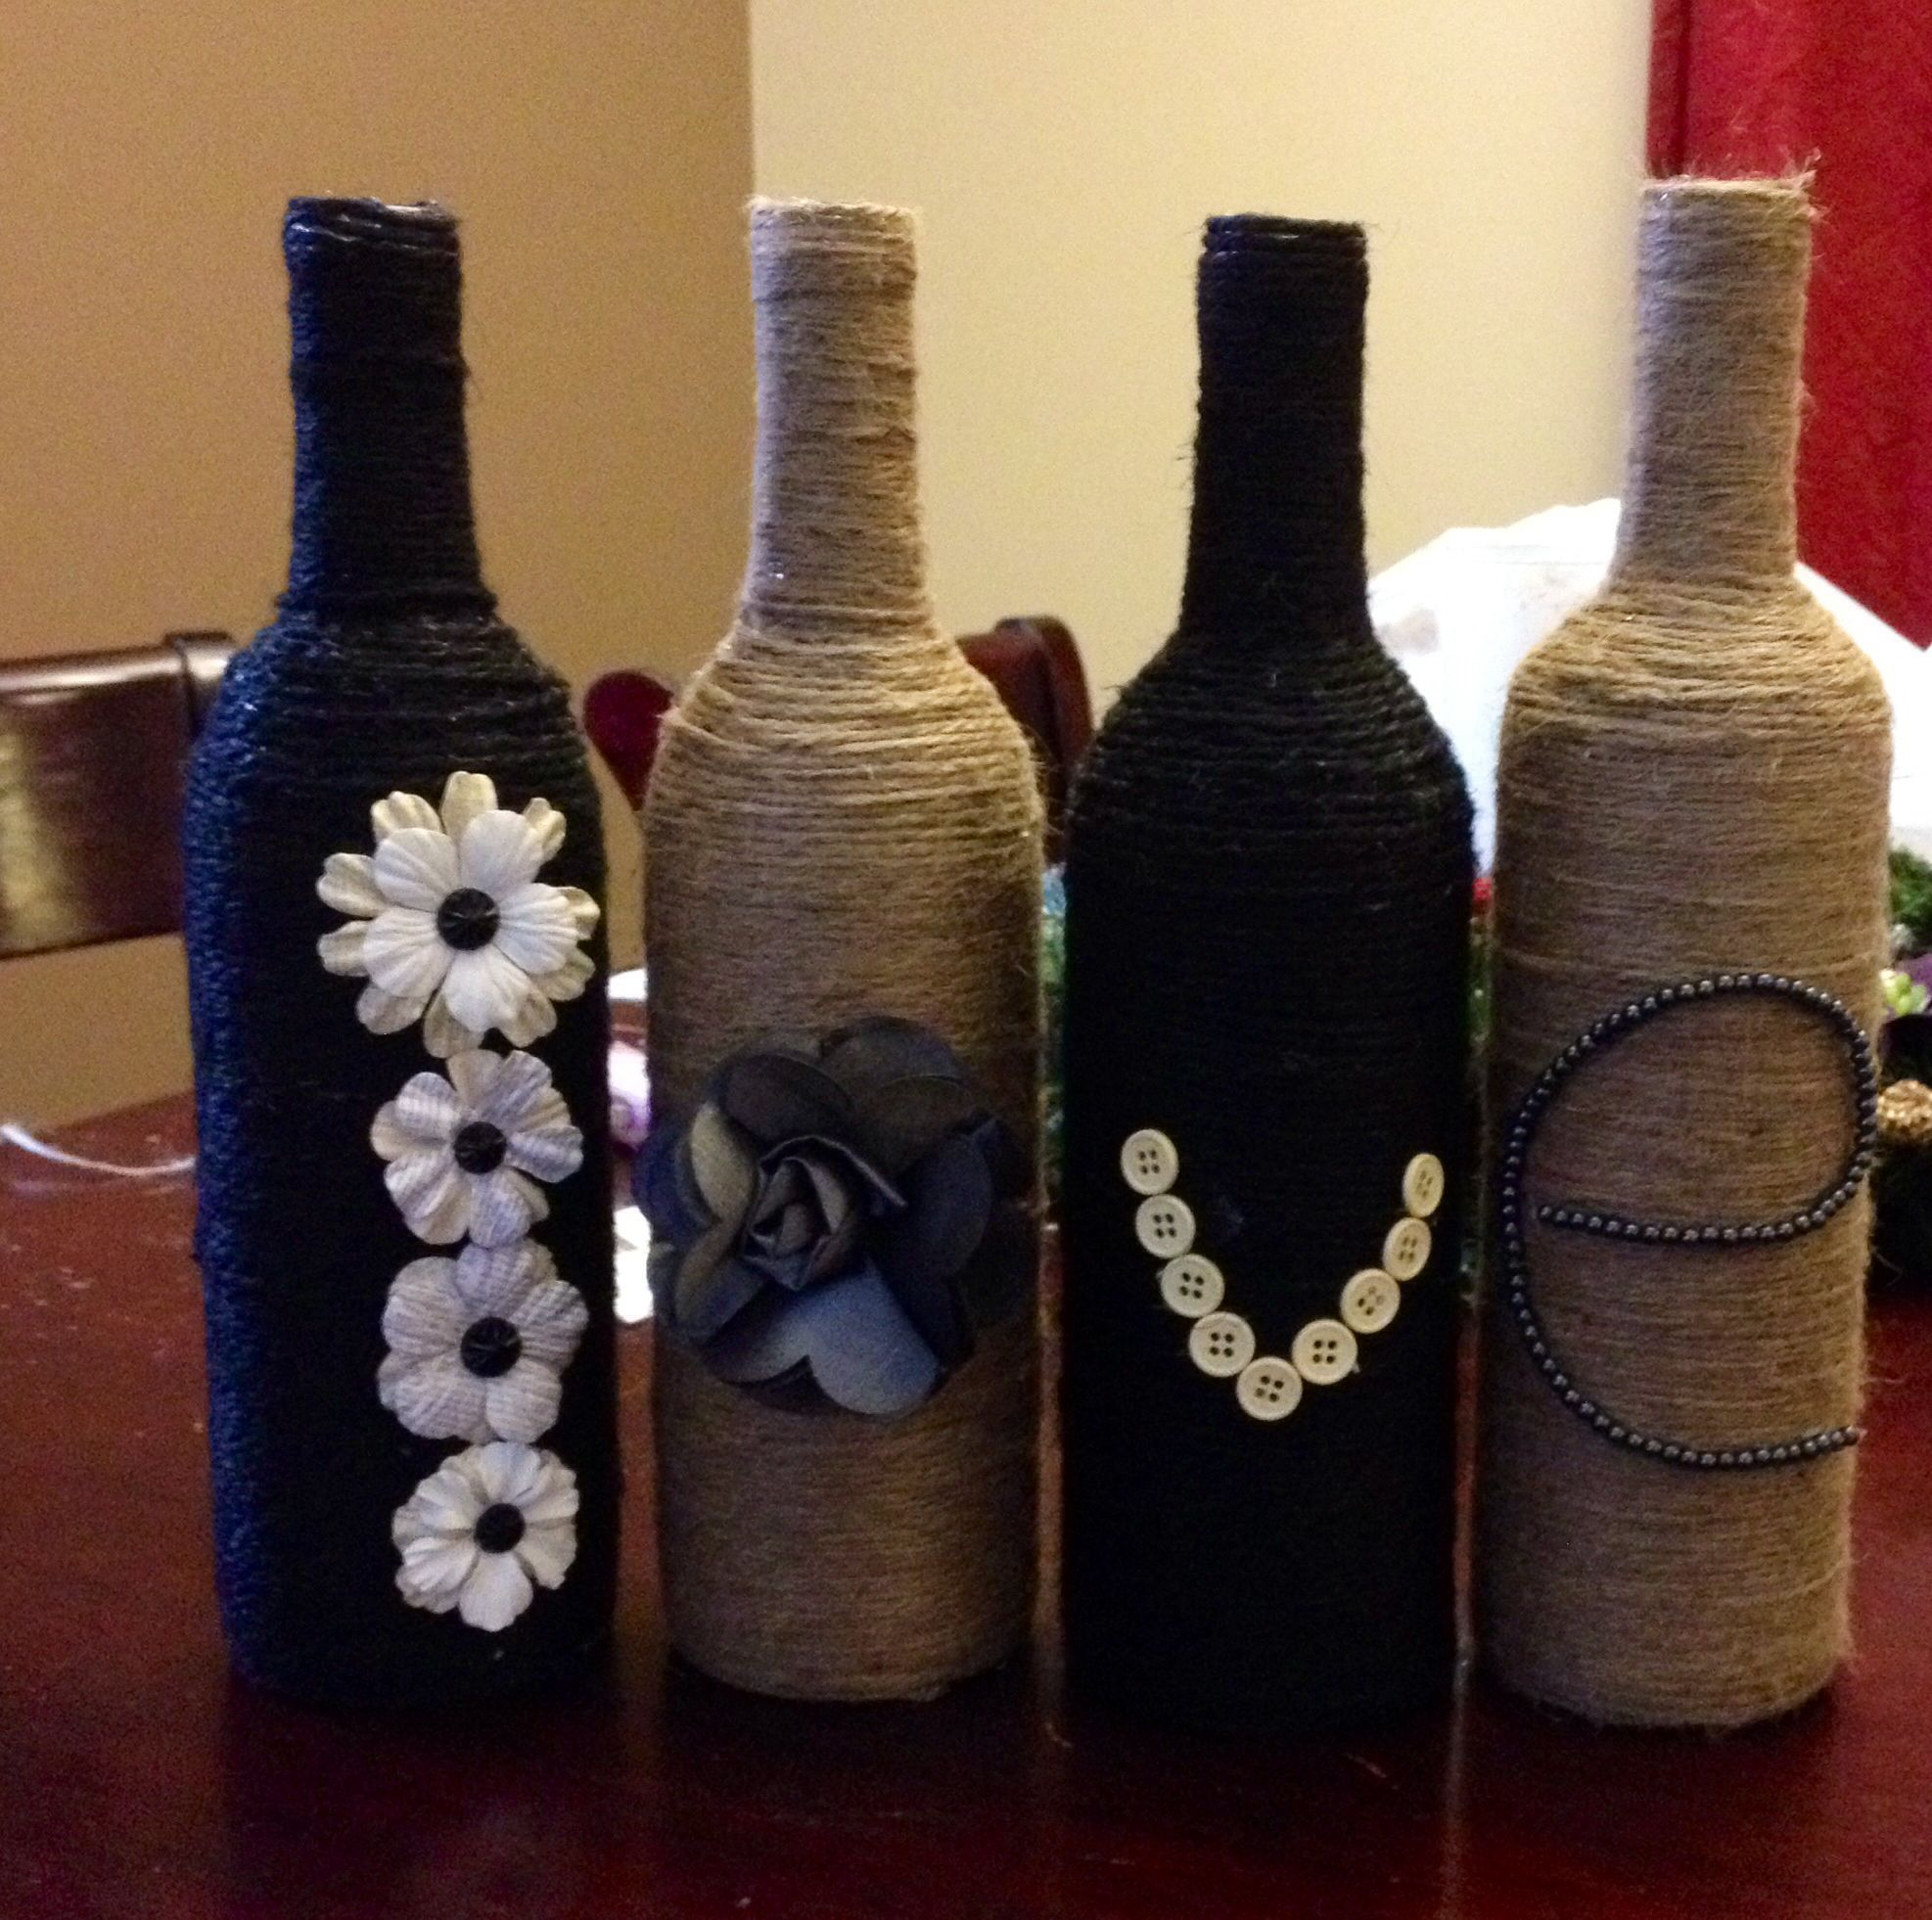 Glass Bottles For Decoration Decorated Wine Bottles  Juta  Pinterest  Decorated Wine Bottles